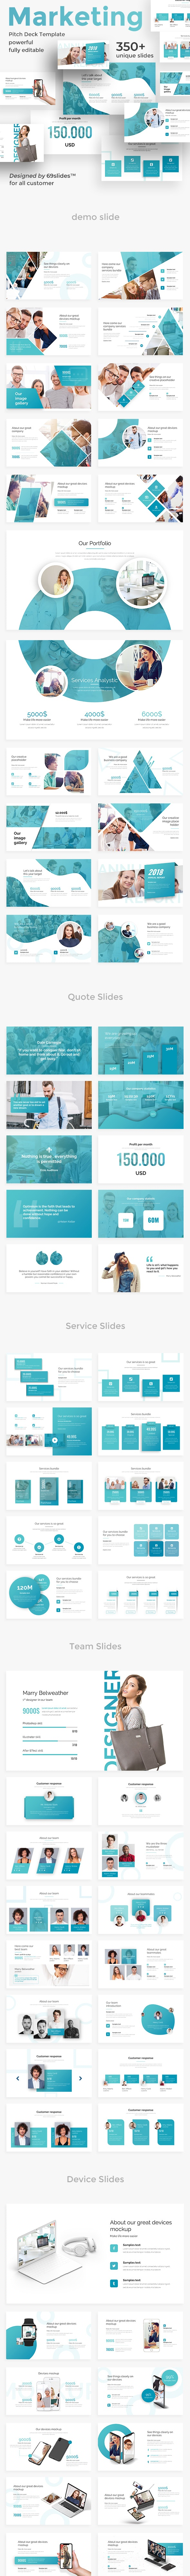 Marketing Pitch Deck Google Slide Template - Google Slides Presentation Templates